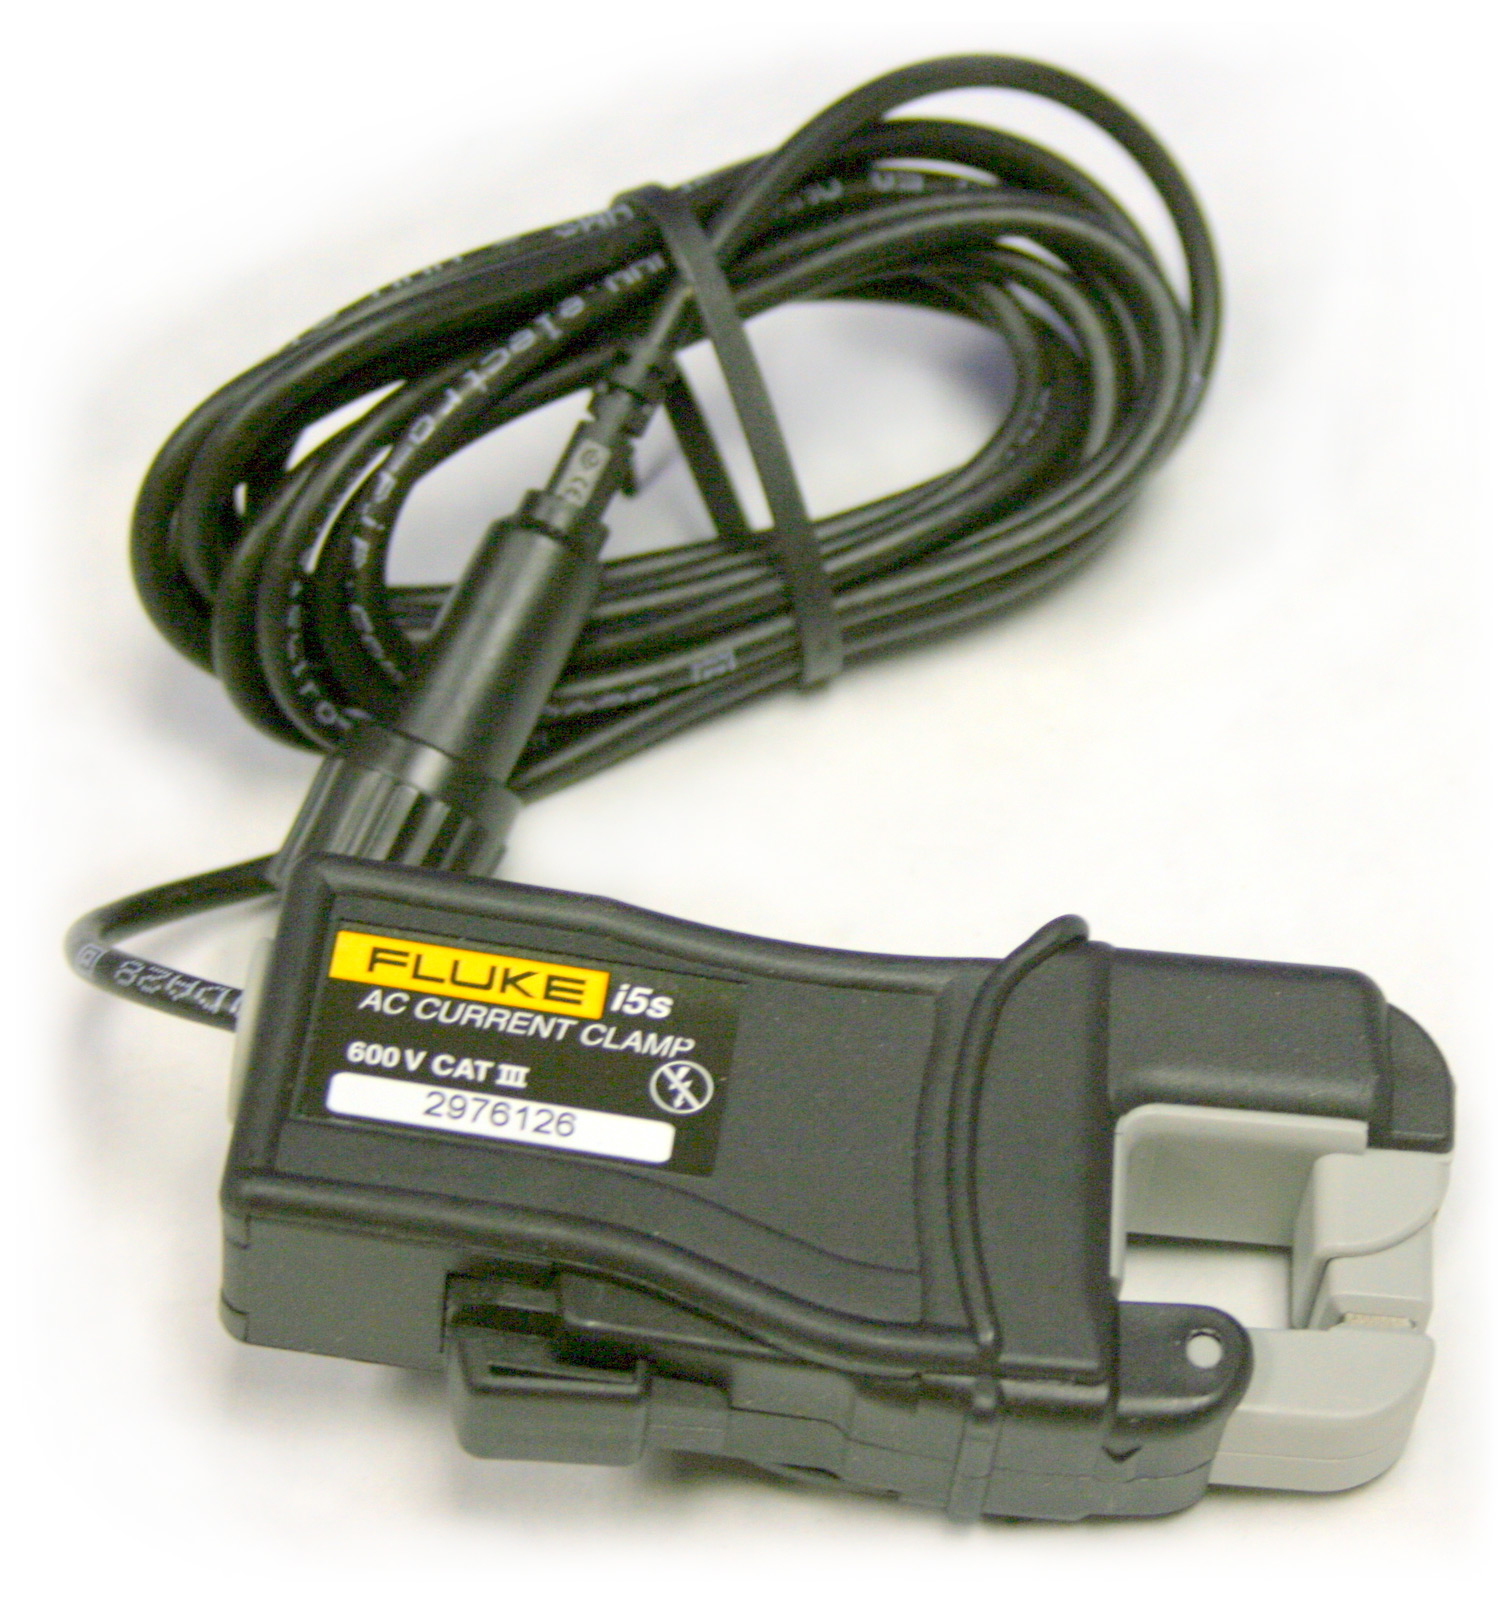 Fluke i5s AC Current Clamp